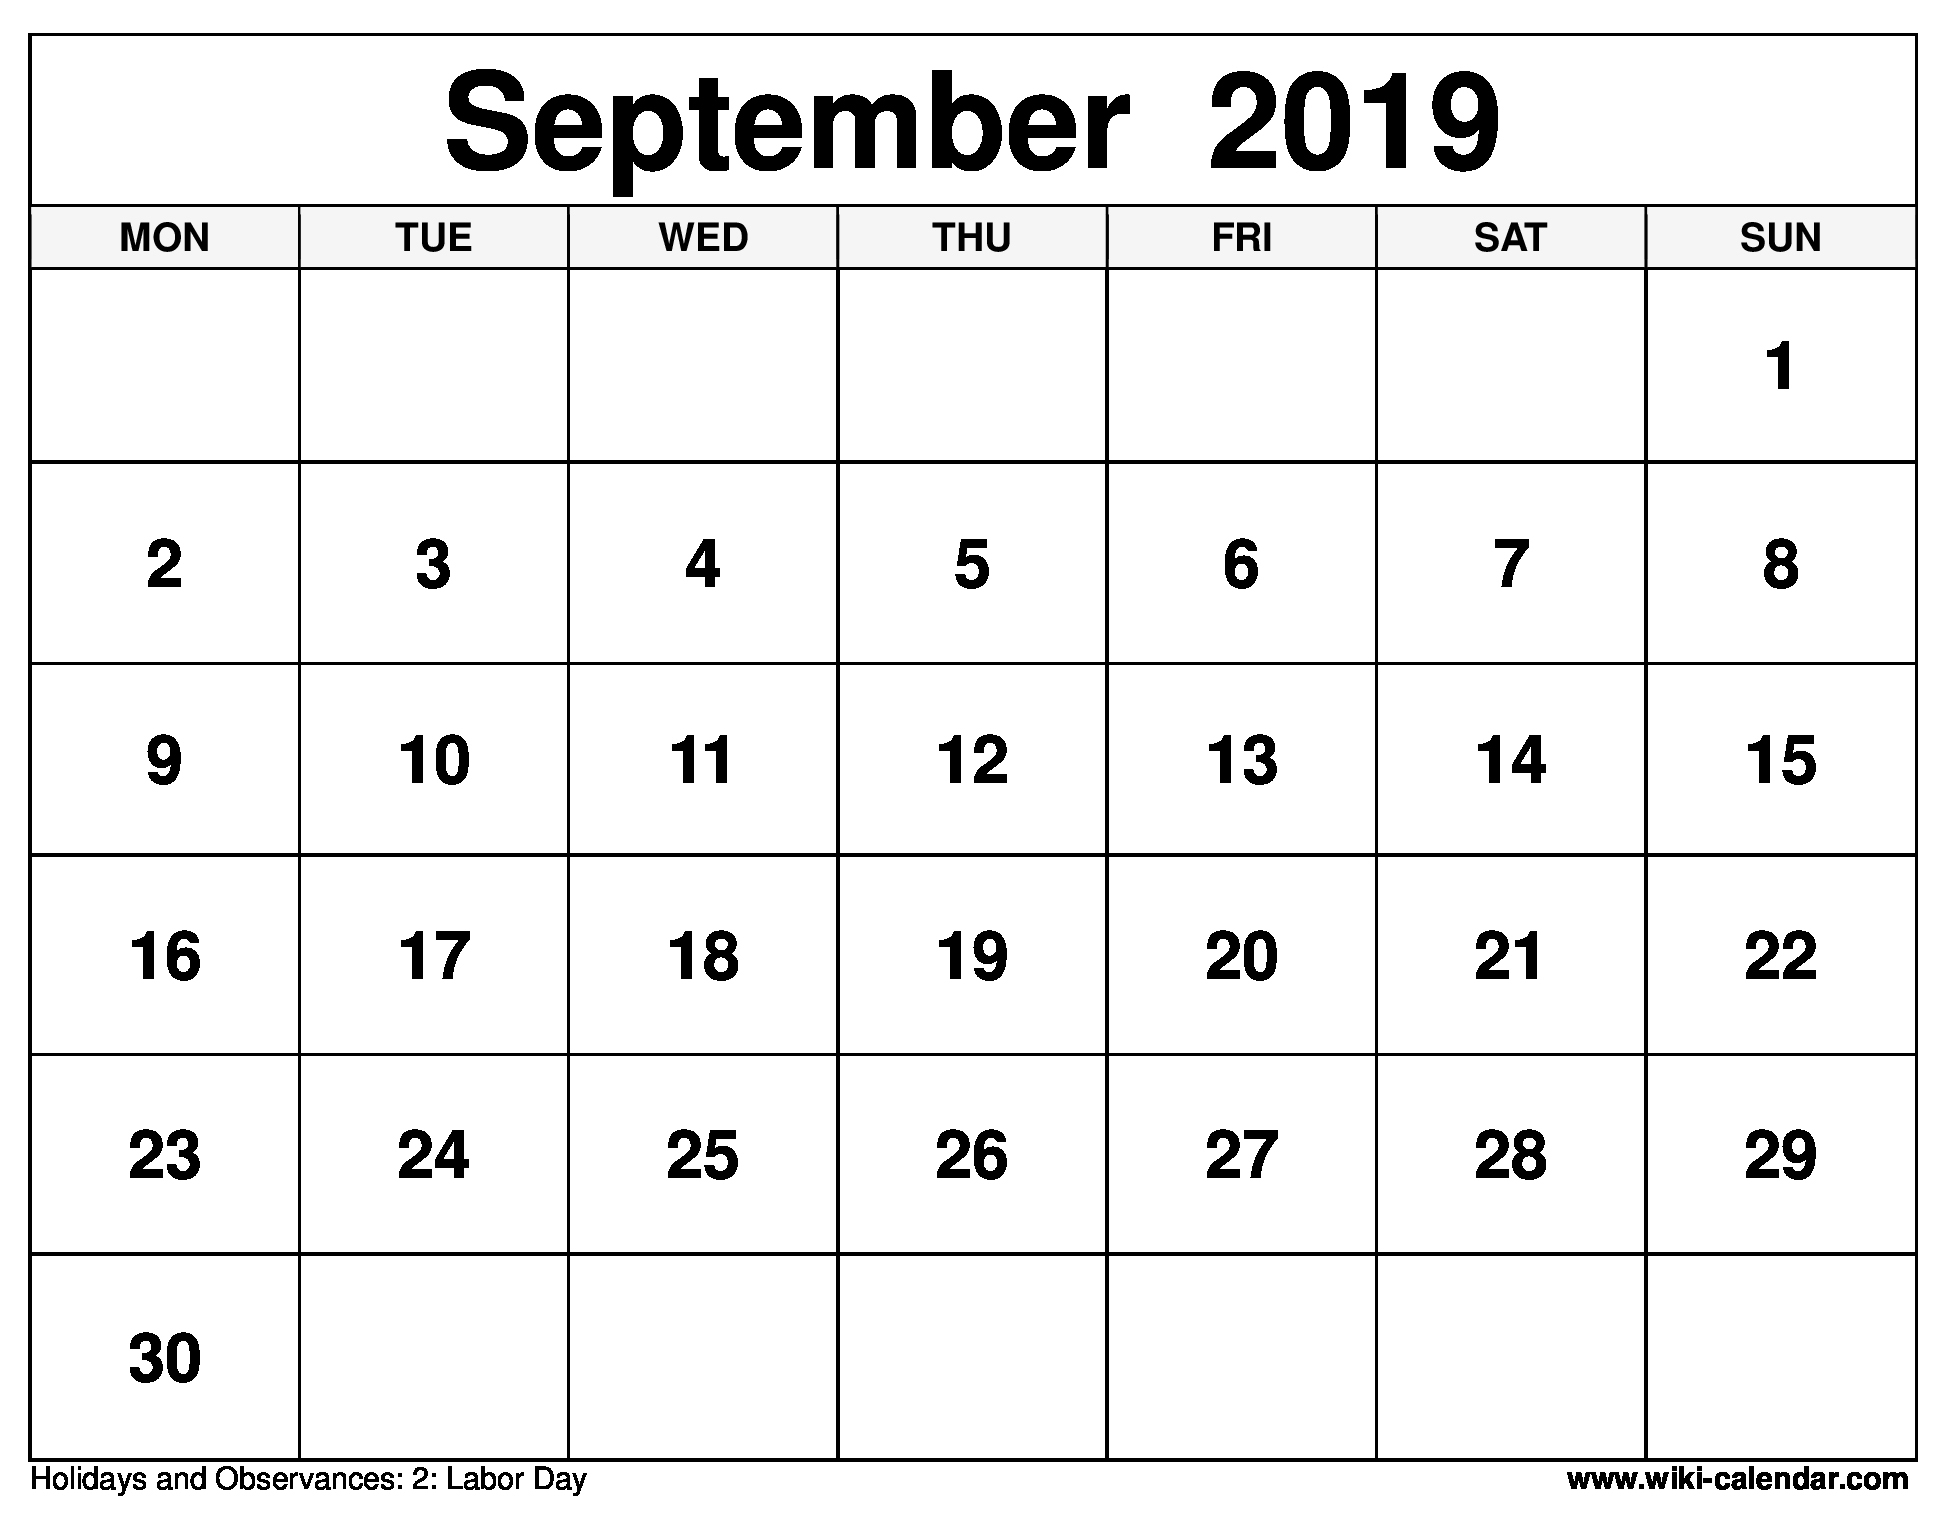 photograph regarding Free Printable September Calendar named No cost Printable September 2019 Calendar